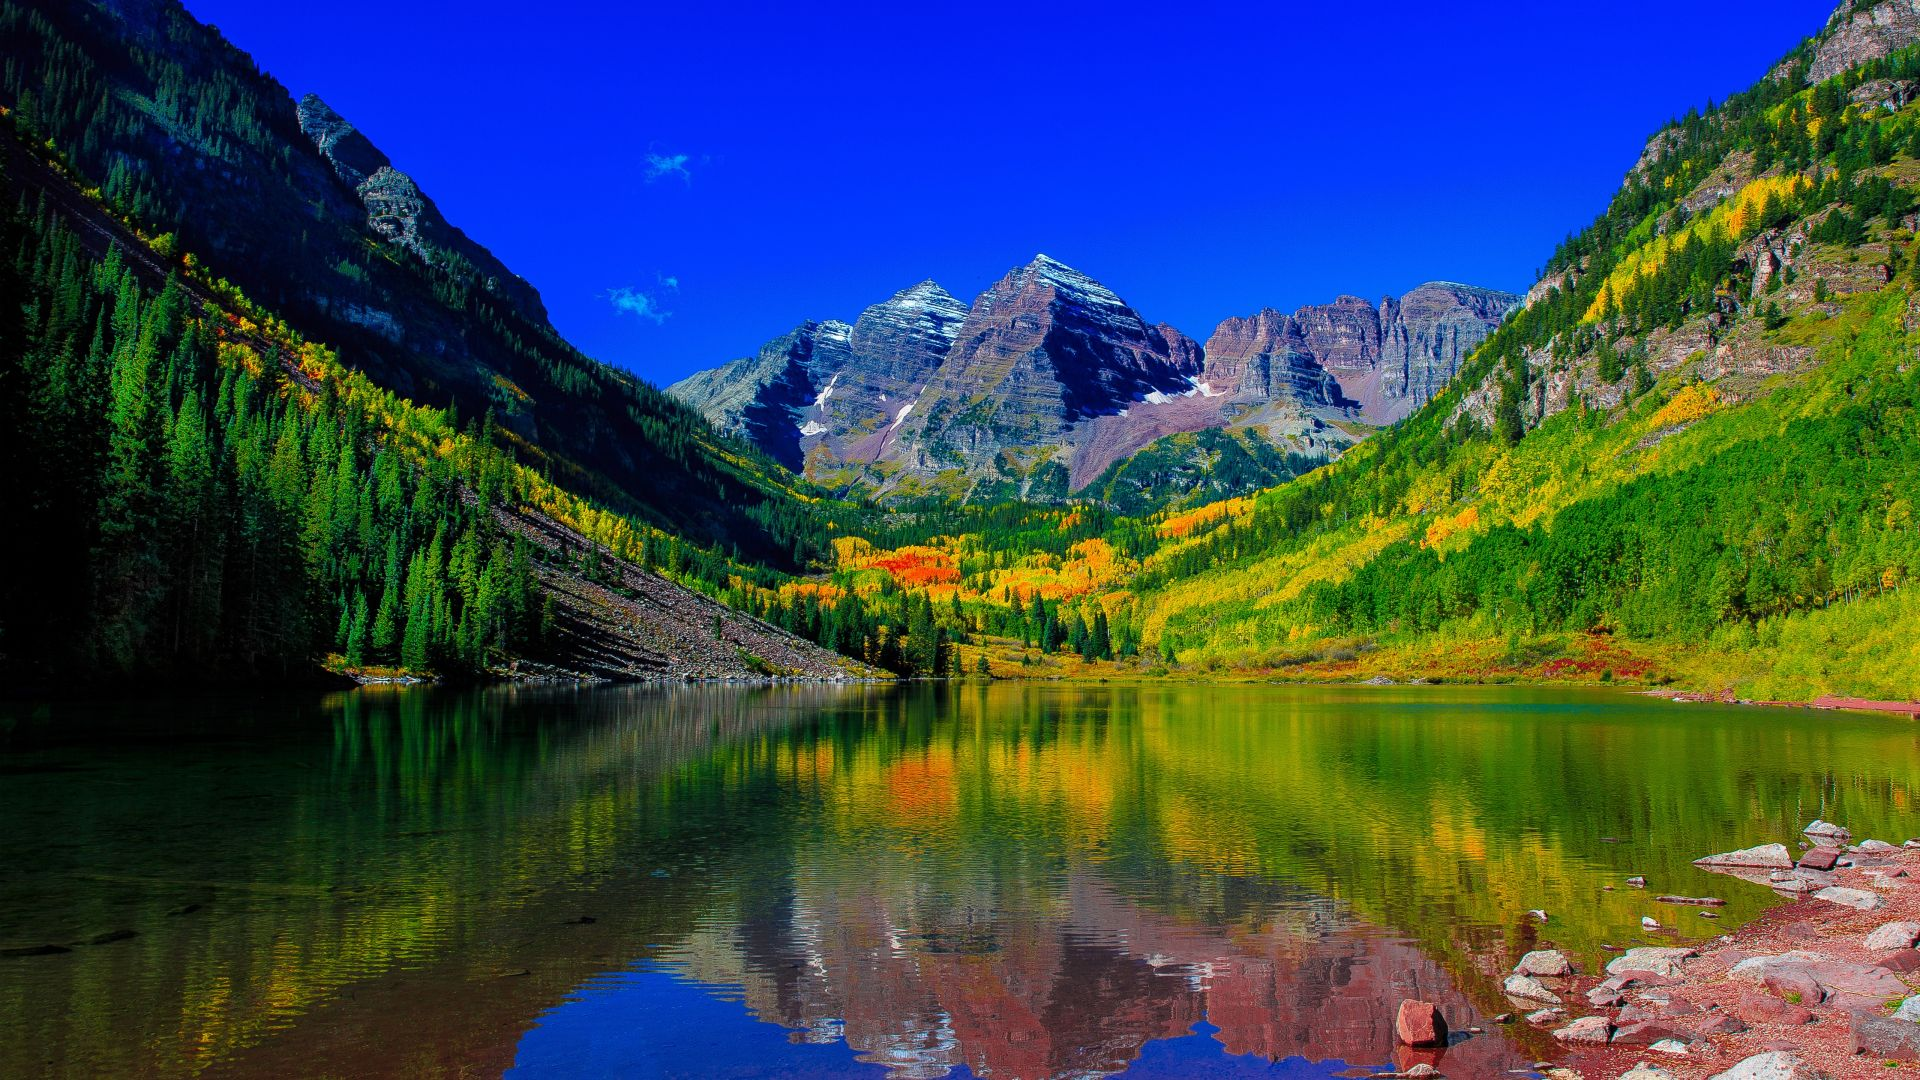 Горы колорадо, река, гора, Maroon Bells, colorado, mount, river